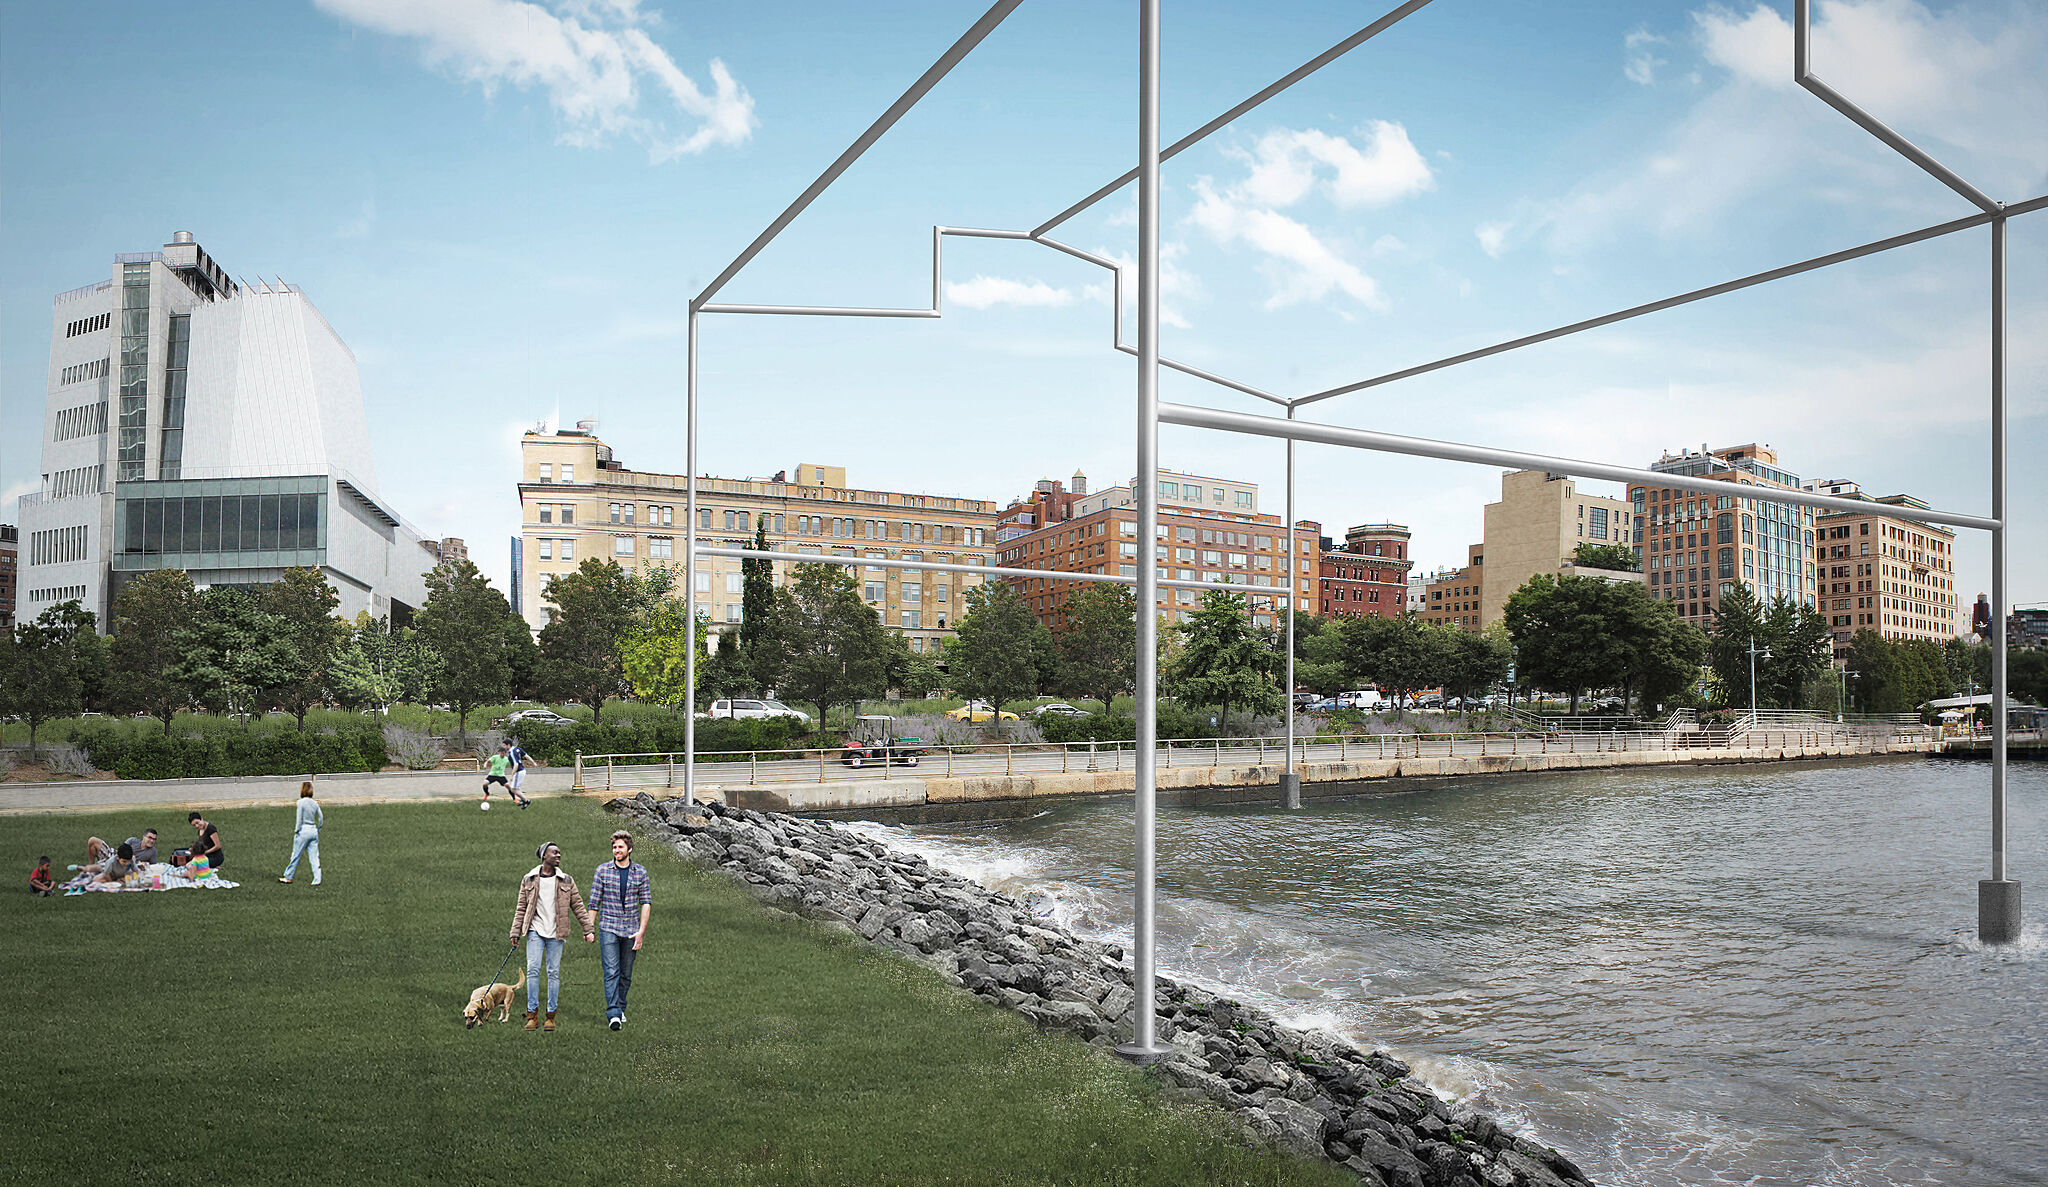 Rendering of a sculpture by David Hammons, resembling the frame of a shed rising from the Hudson River, viewed looking east